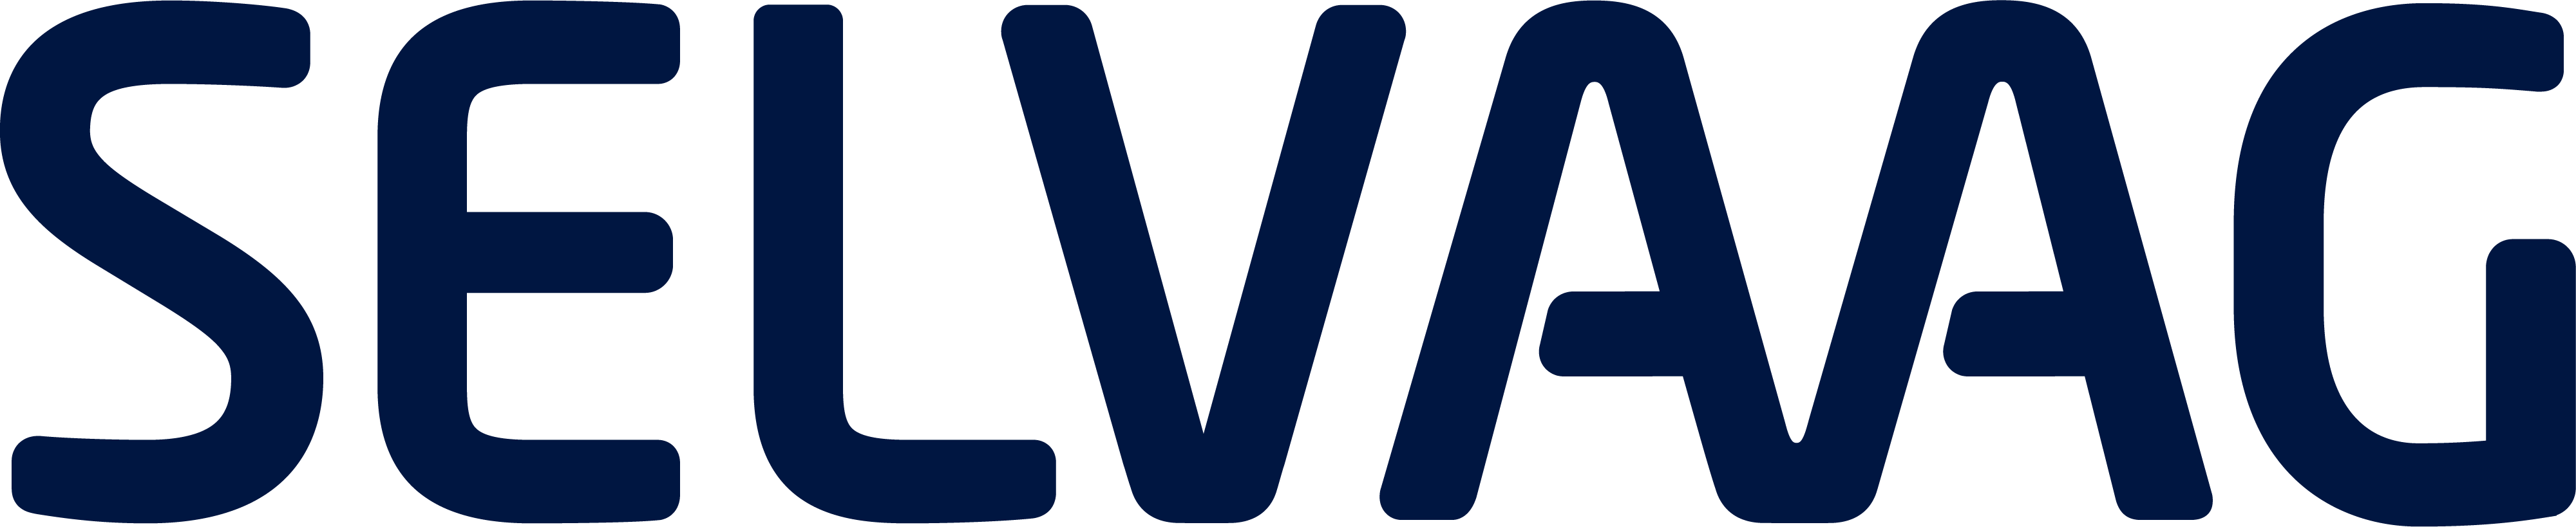 selvaag_as_logo_dypblaa